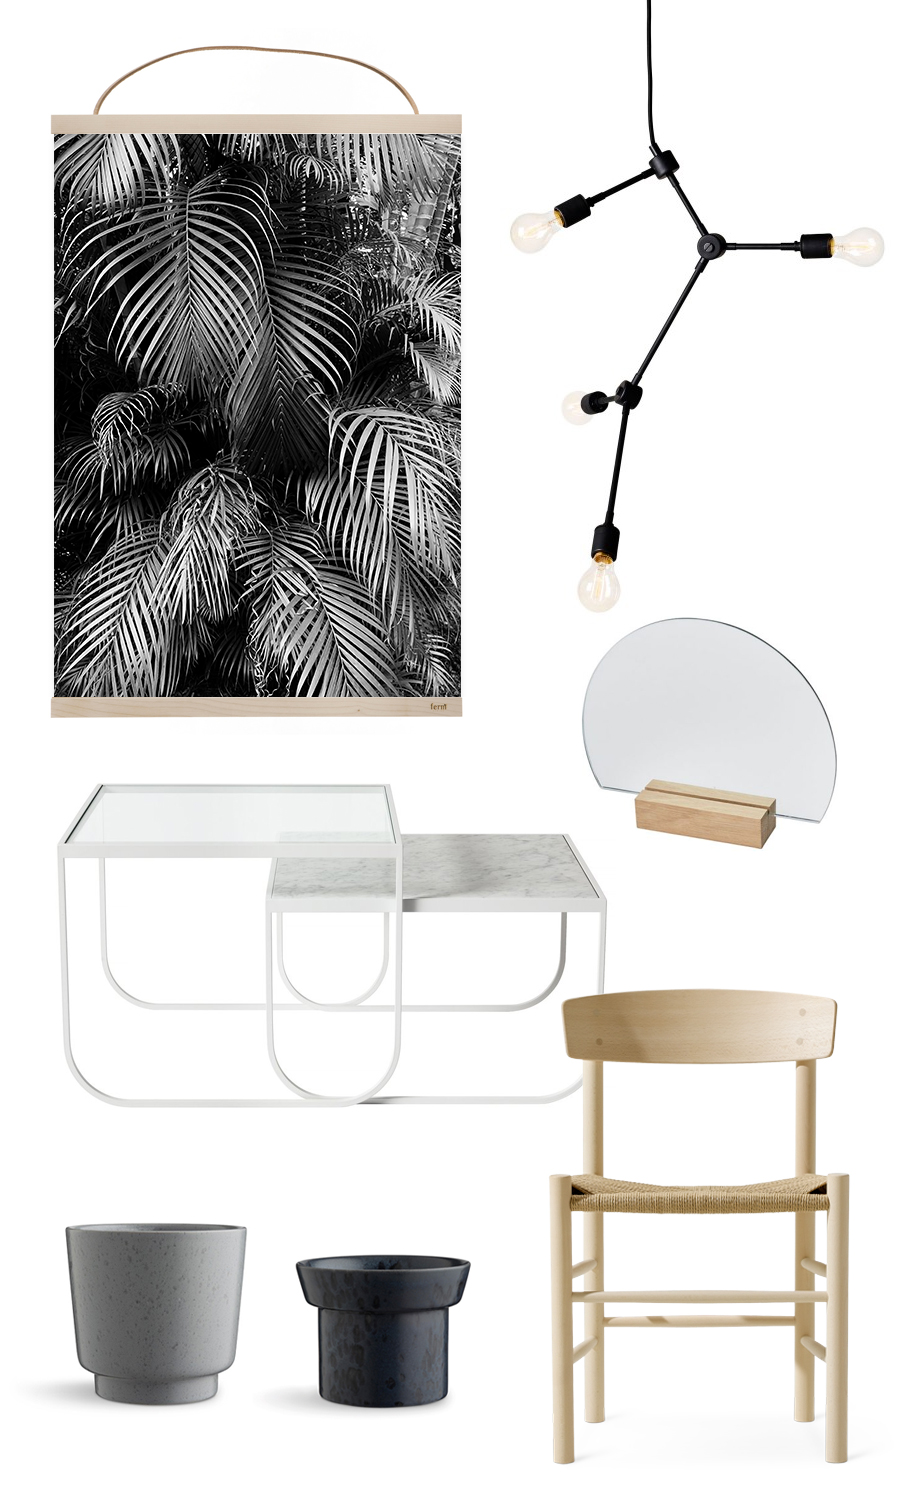 Living Room inspiration - via Coco Lapine Design